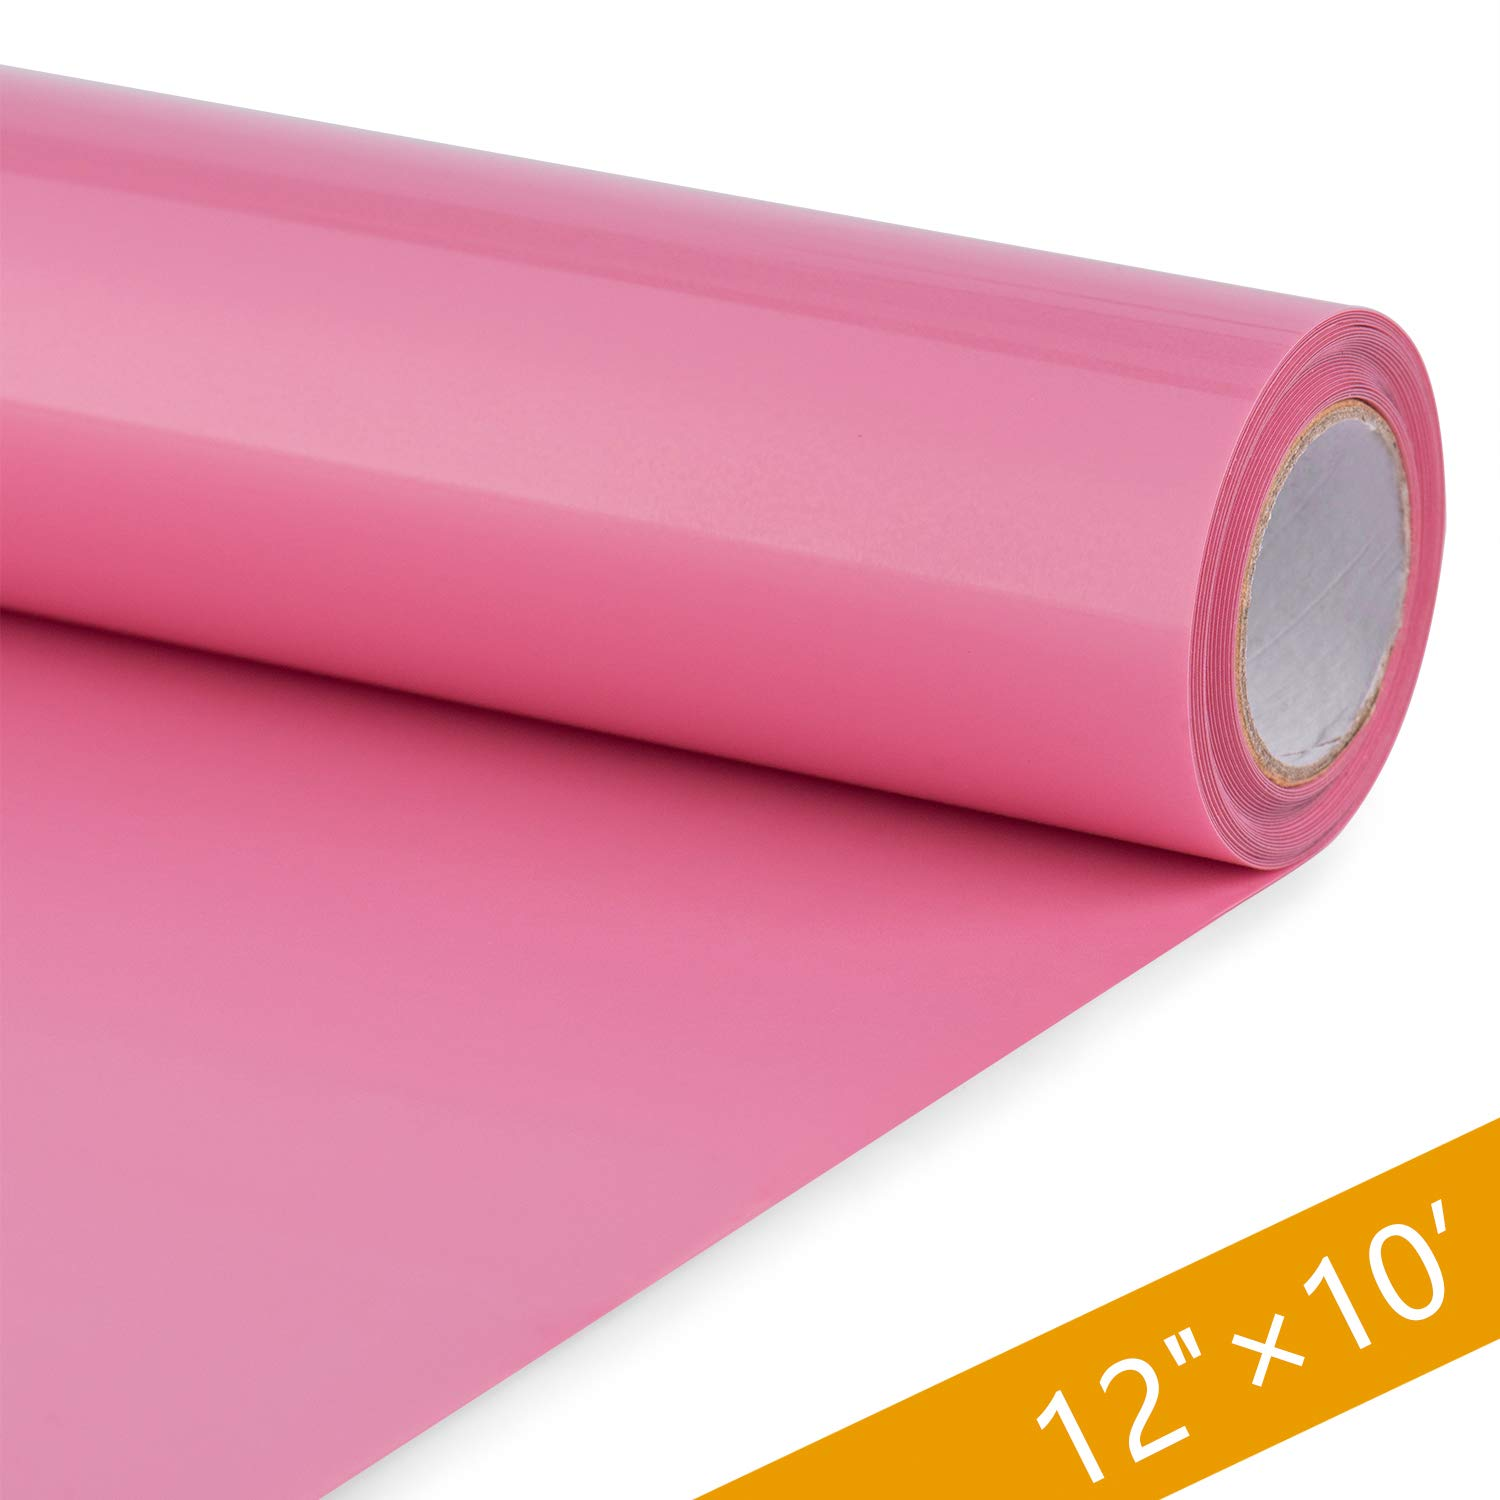 HENPISEN HTV Vinyl Rolls - 12 Inch × 10 Feet PU Heat Transfer Vinyl, Easy Cut & Weed Compatible with Cameo Silhouette & Cricut, Iron on Vinyl for DIY T-Shirts, Bags and Other Textiles(Neon Pink)